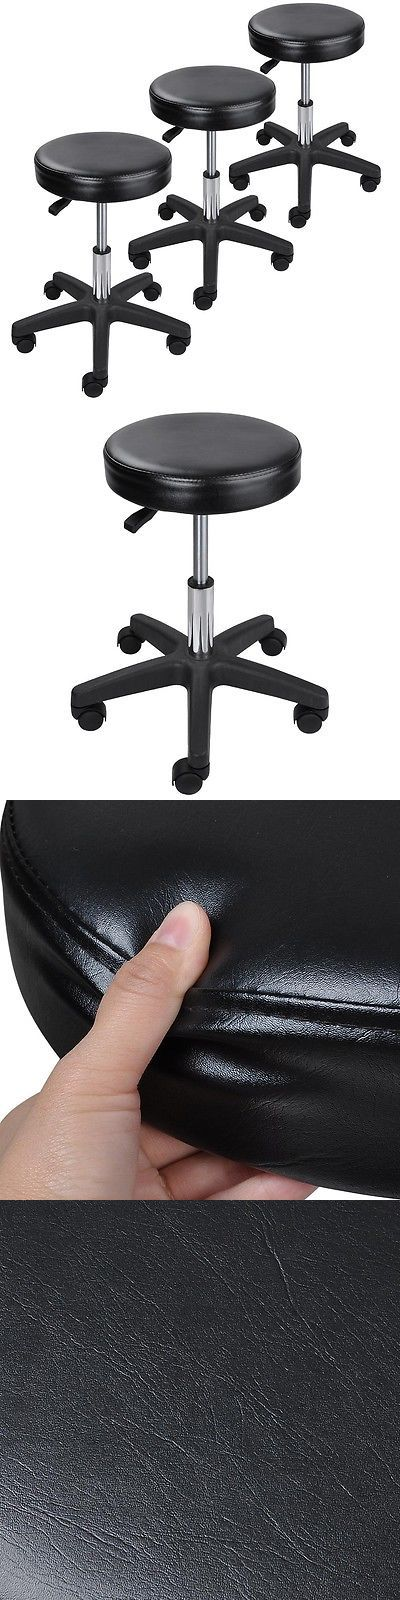 Other Salon and Spa Equipment: 3X Black Adjustable Tattoo Salon Stool Rolling Chair Facial Massage Office BUY IT NOW ONLY: $78.9